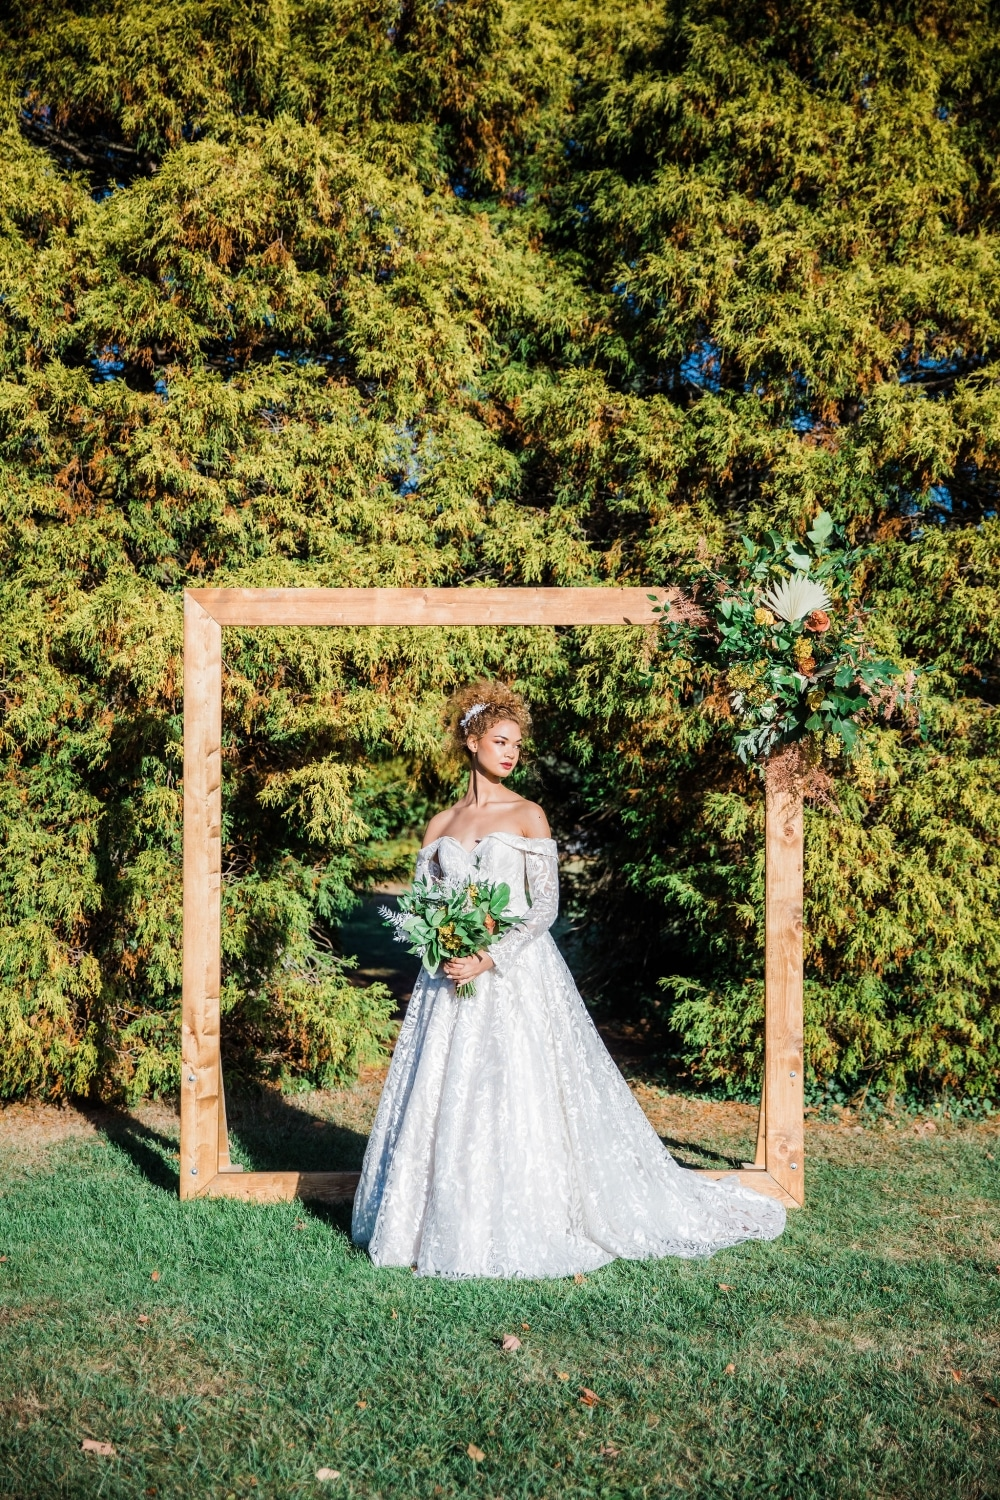 bride looking away in stunning strapless wedding gown in front of altar in greenery